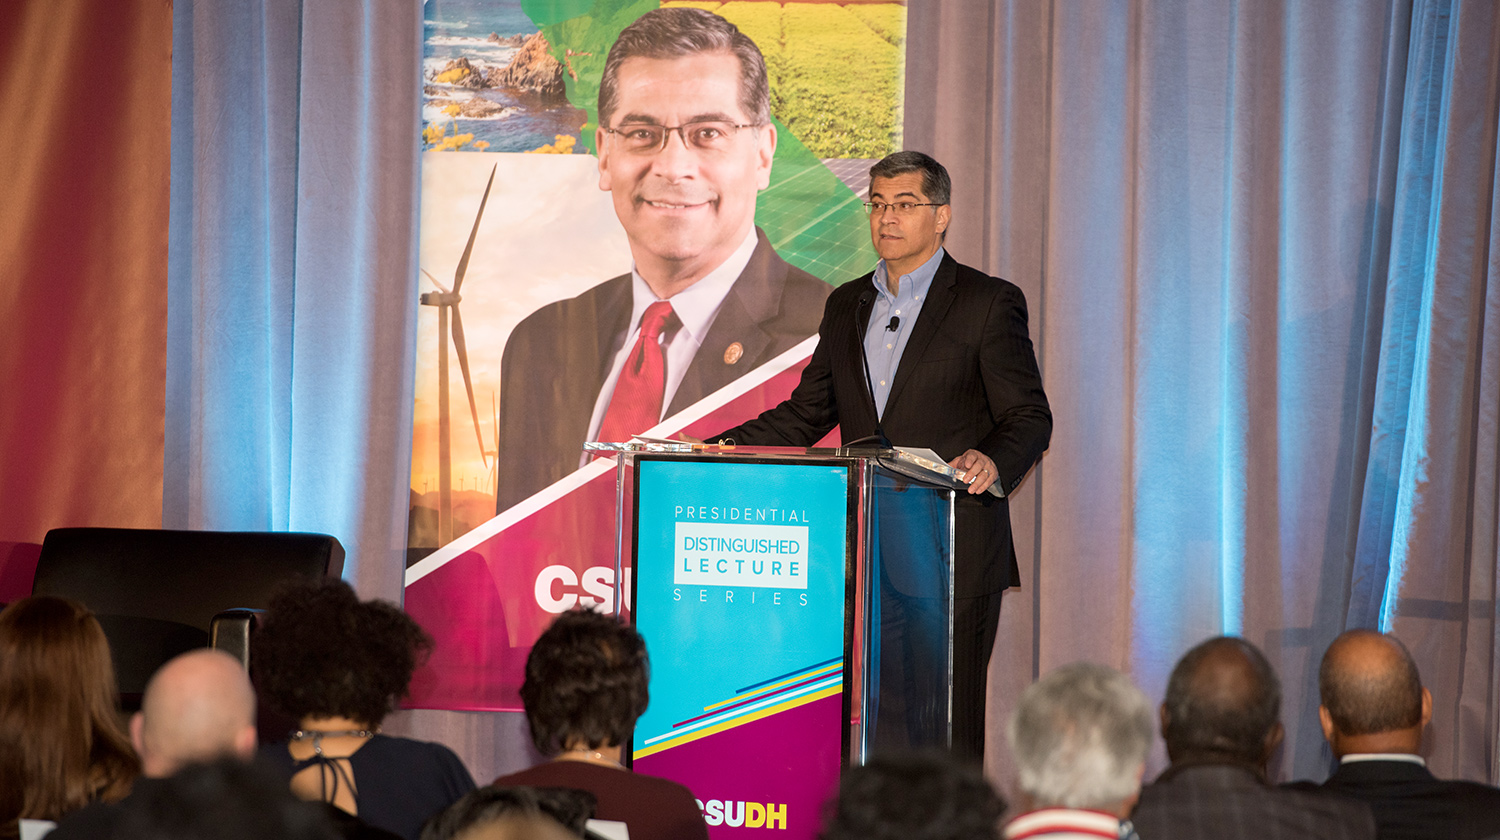 Attorney General Xavier Becerra serves as the feature speaker during CSUDH's Presidential Distinguished Lecture Series.